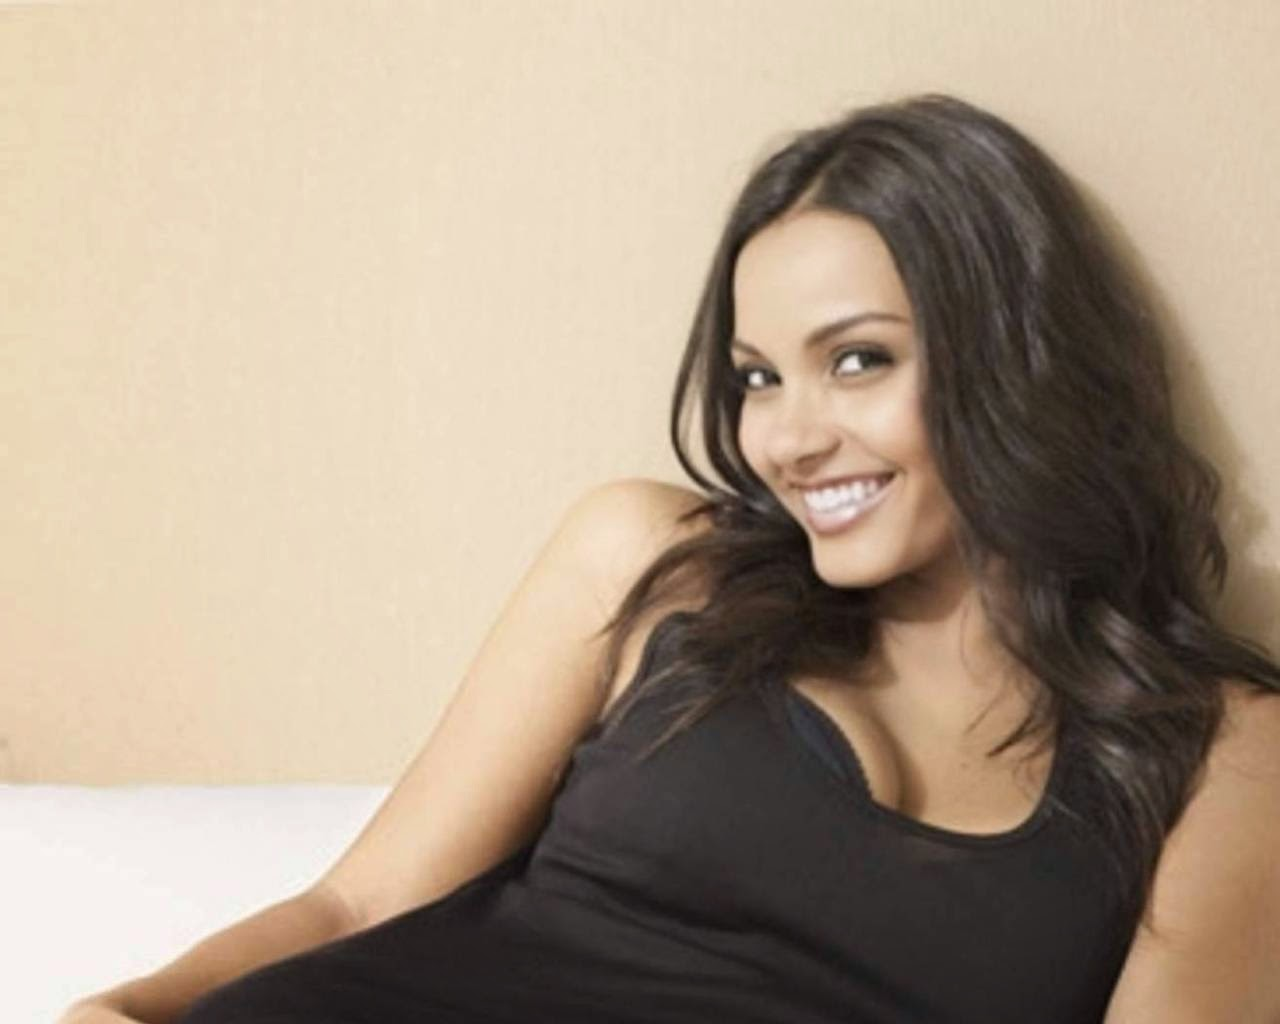 jessica lucas hd wallpapers - photo #25